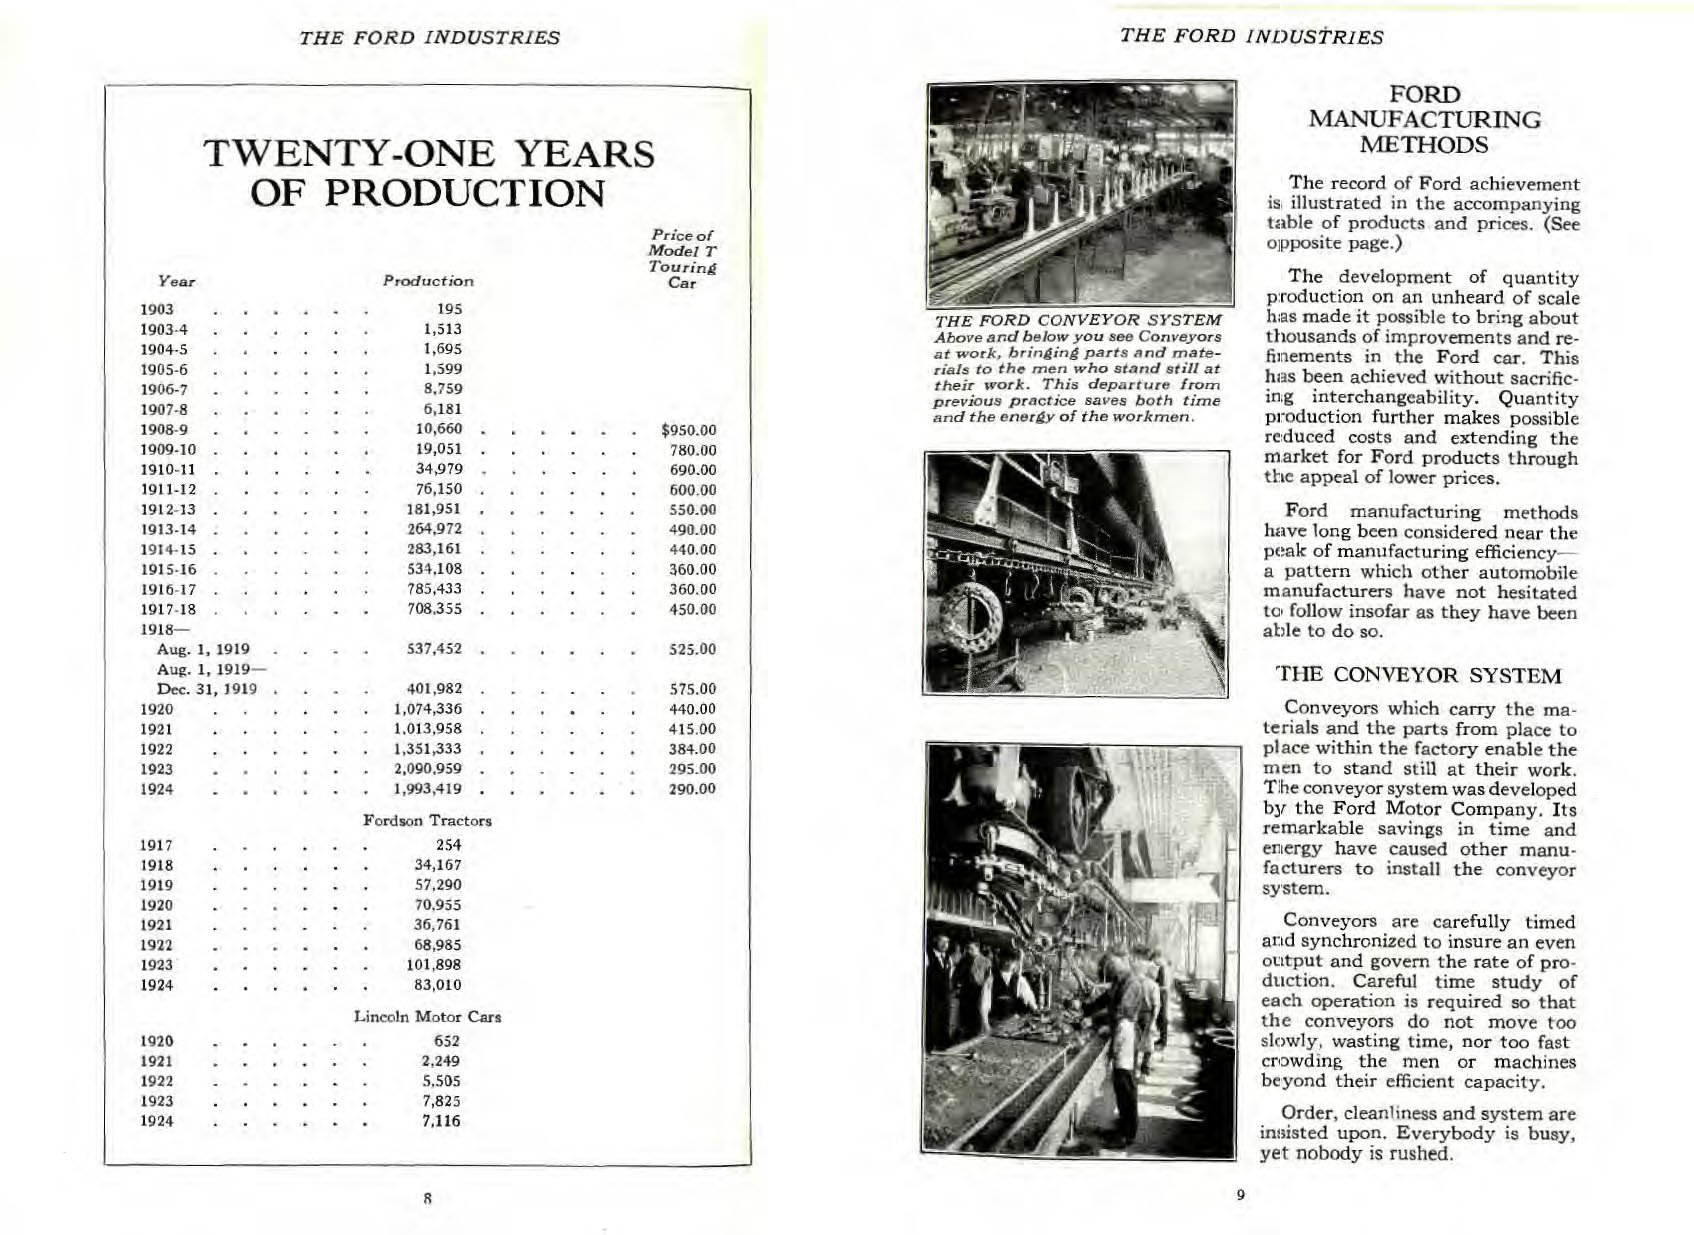 1925 The Ford Industries Booklet